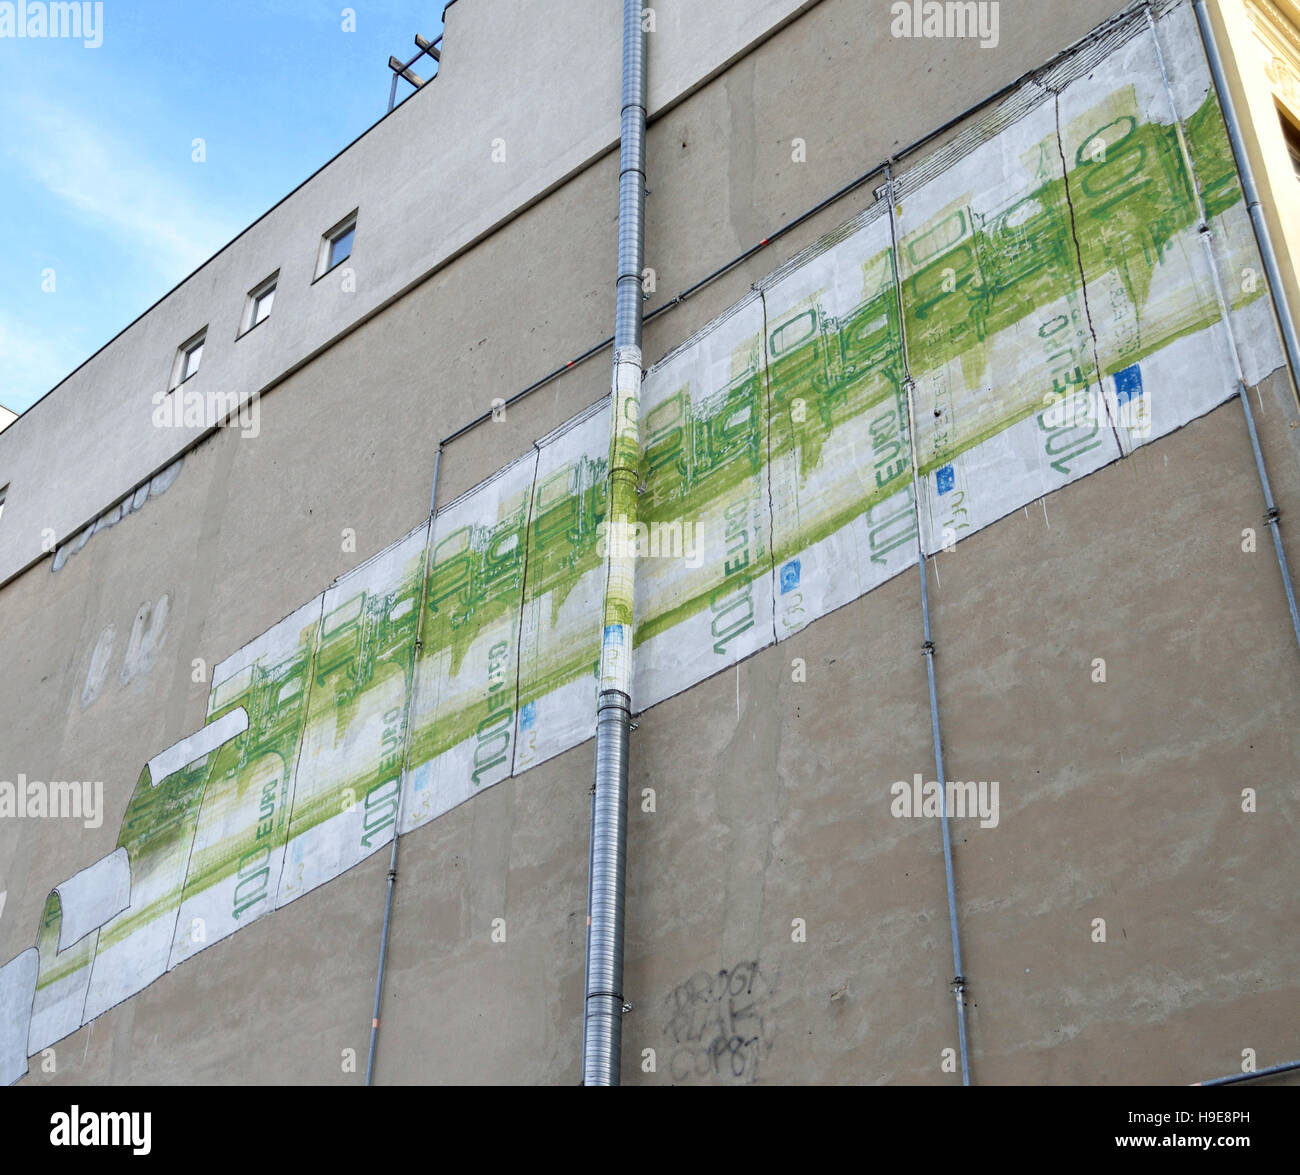 Graffiti by Italian artist Blu on a building in Berlin Kreuzberg district. - Stock Image